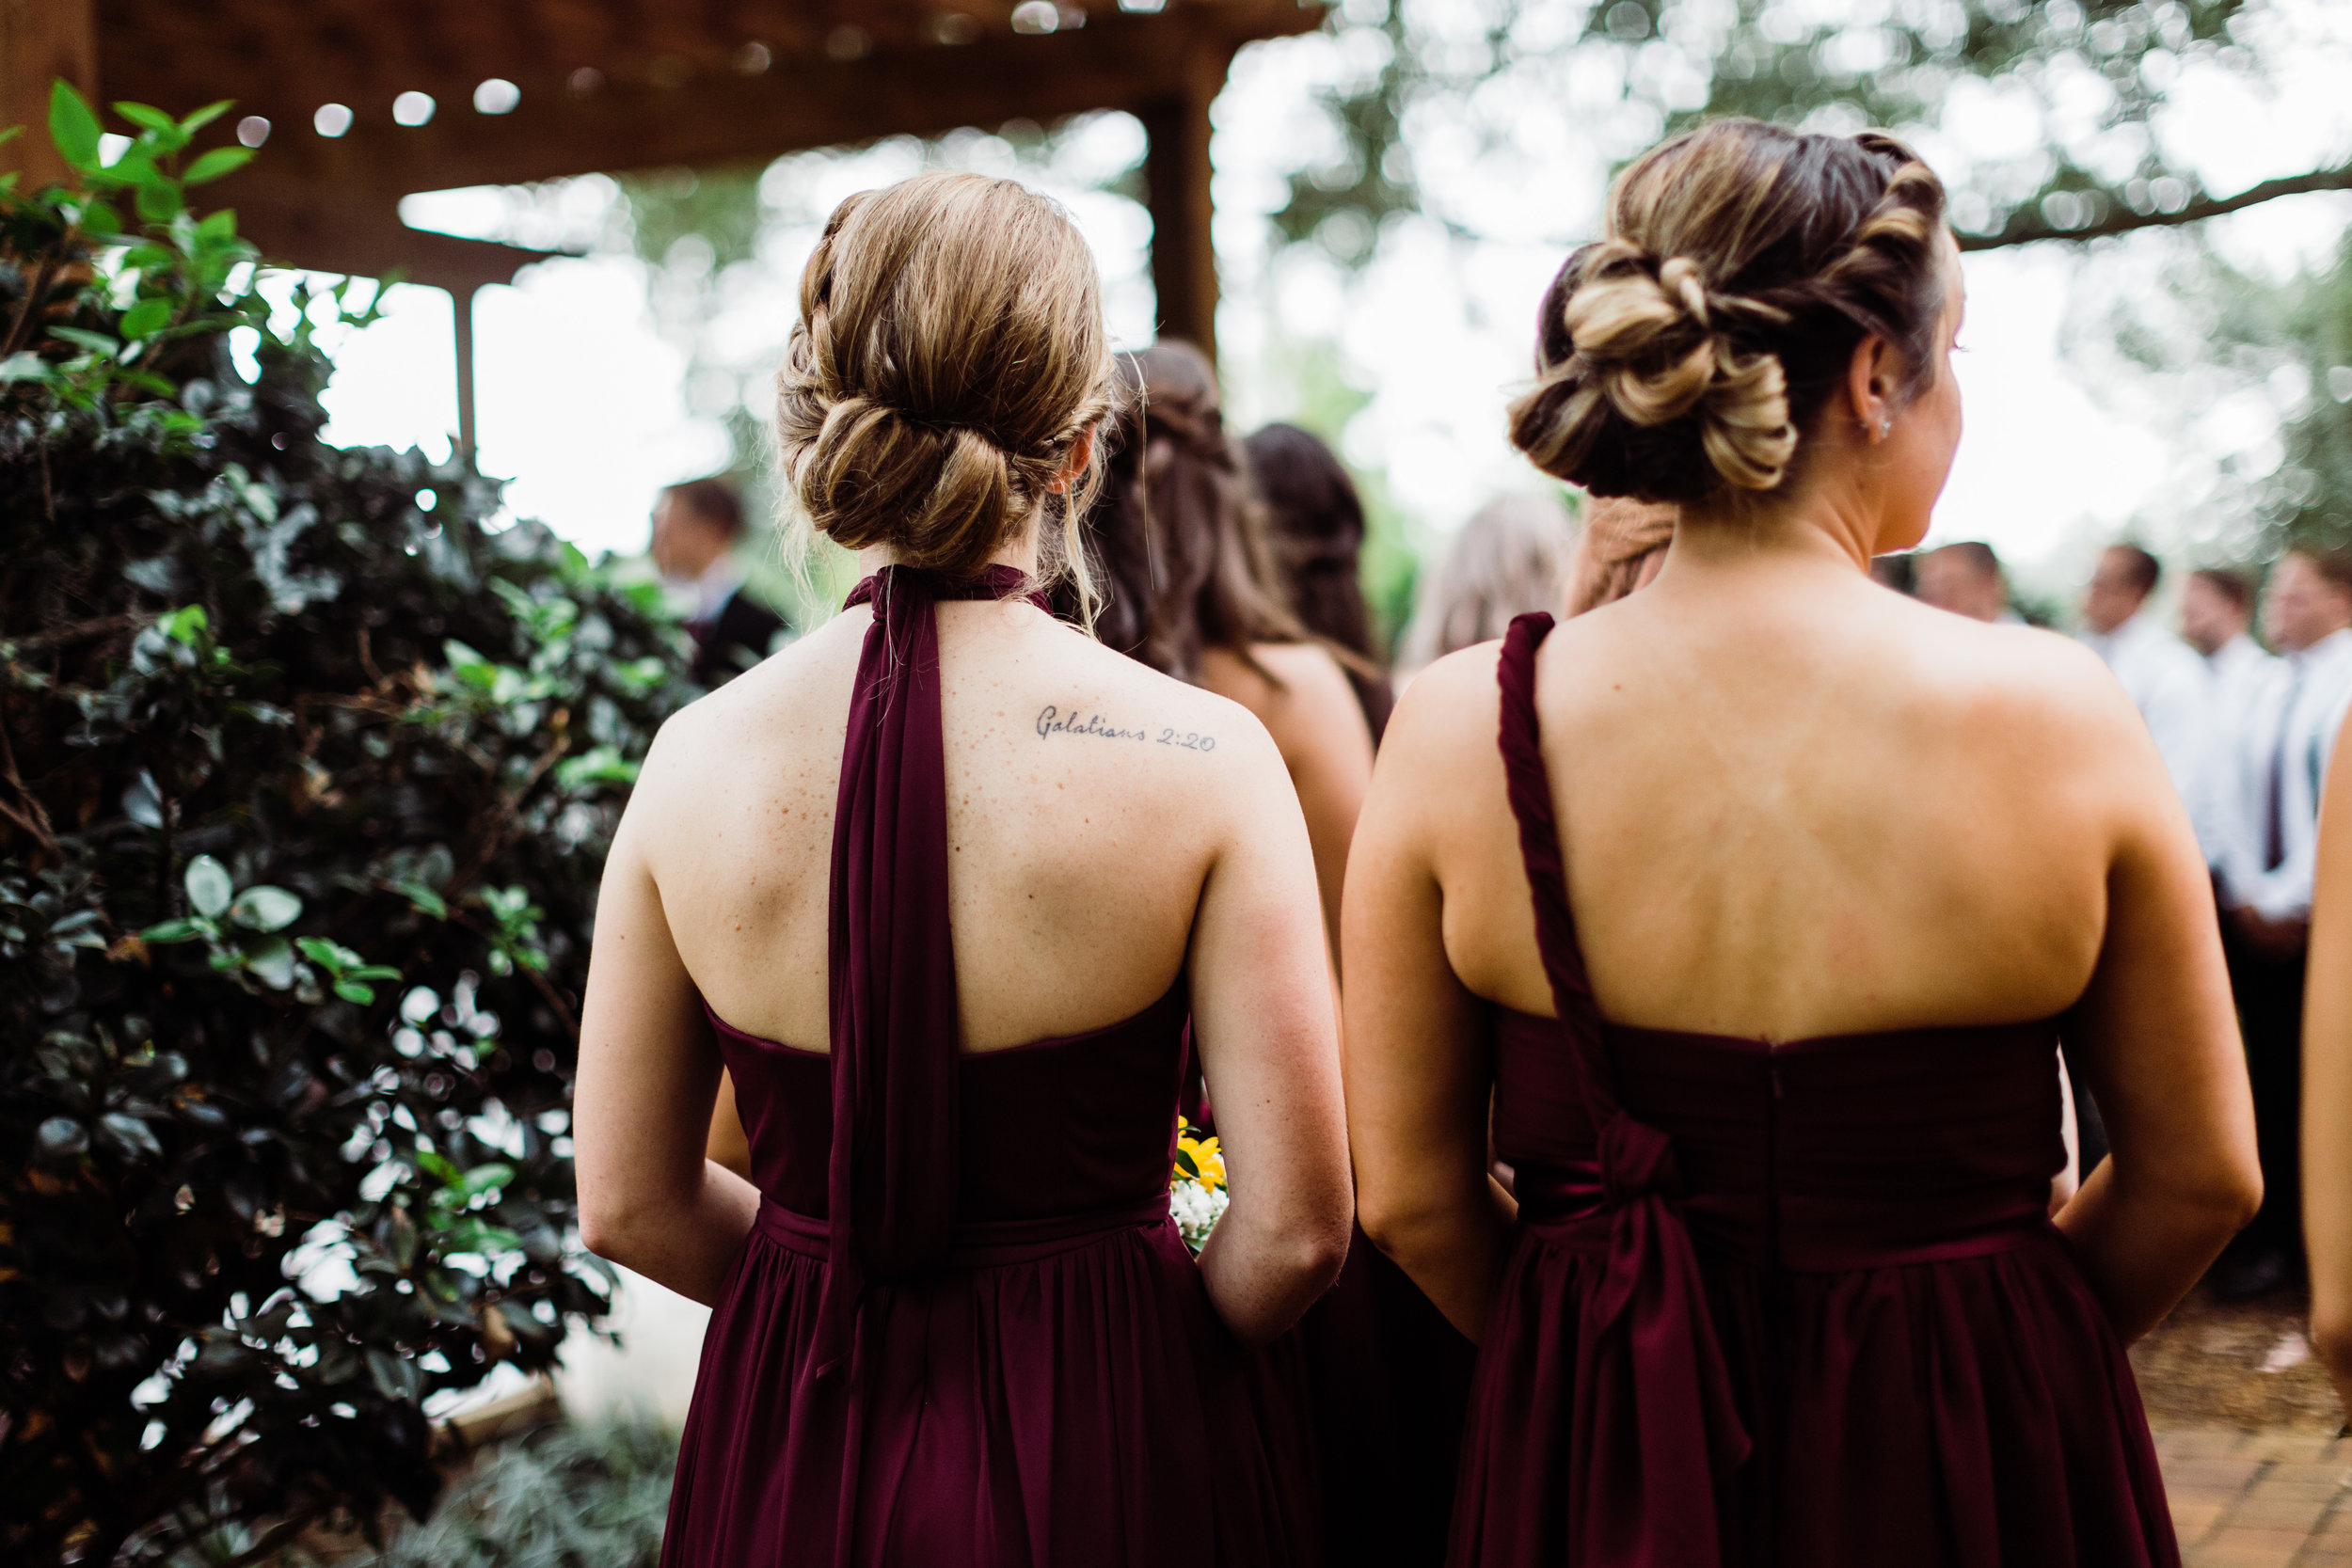 2017.10.08 Zach and Ashley Courson Wedding Club Lake Plantation (327 of 1079).jpg